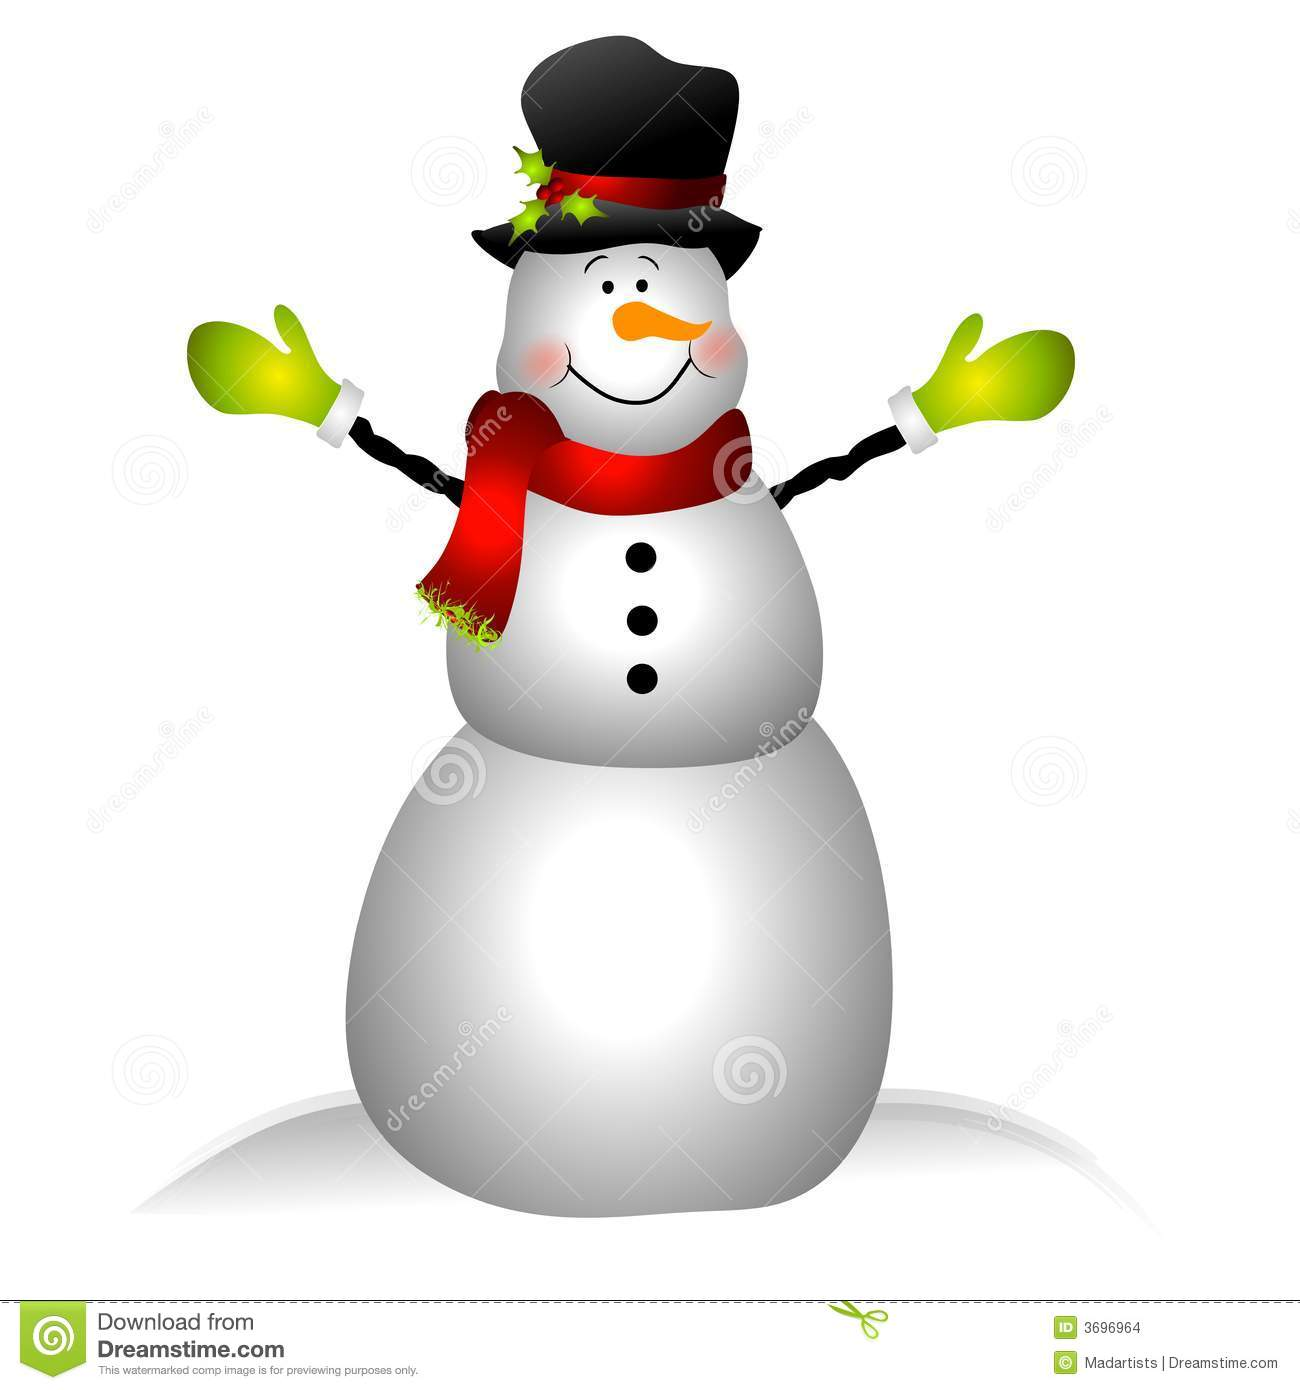 hight resolution of smiling snowman clip art isolated